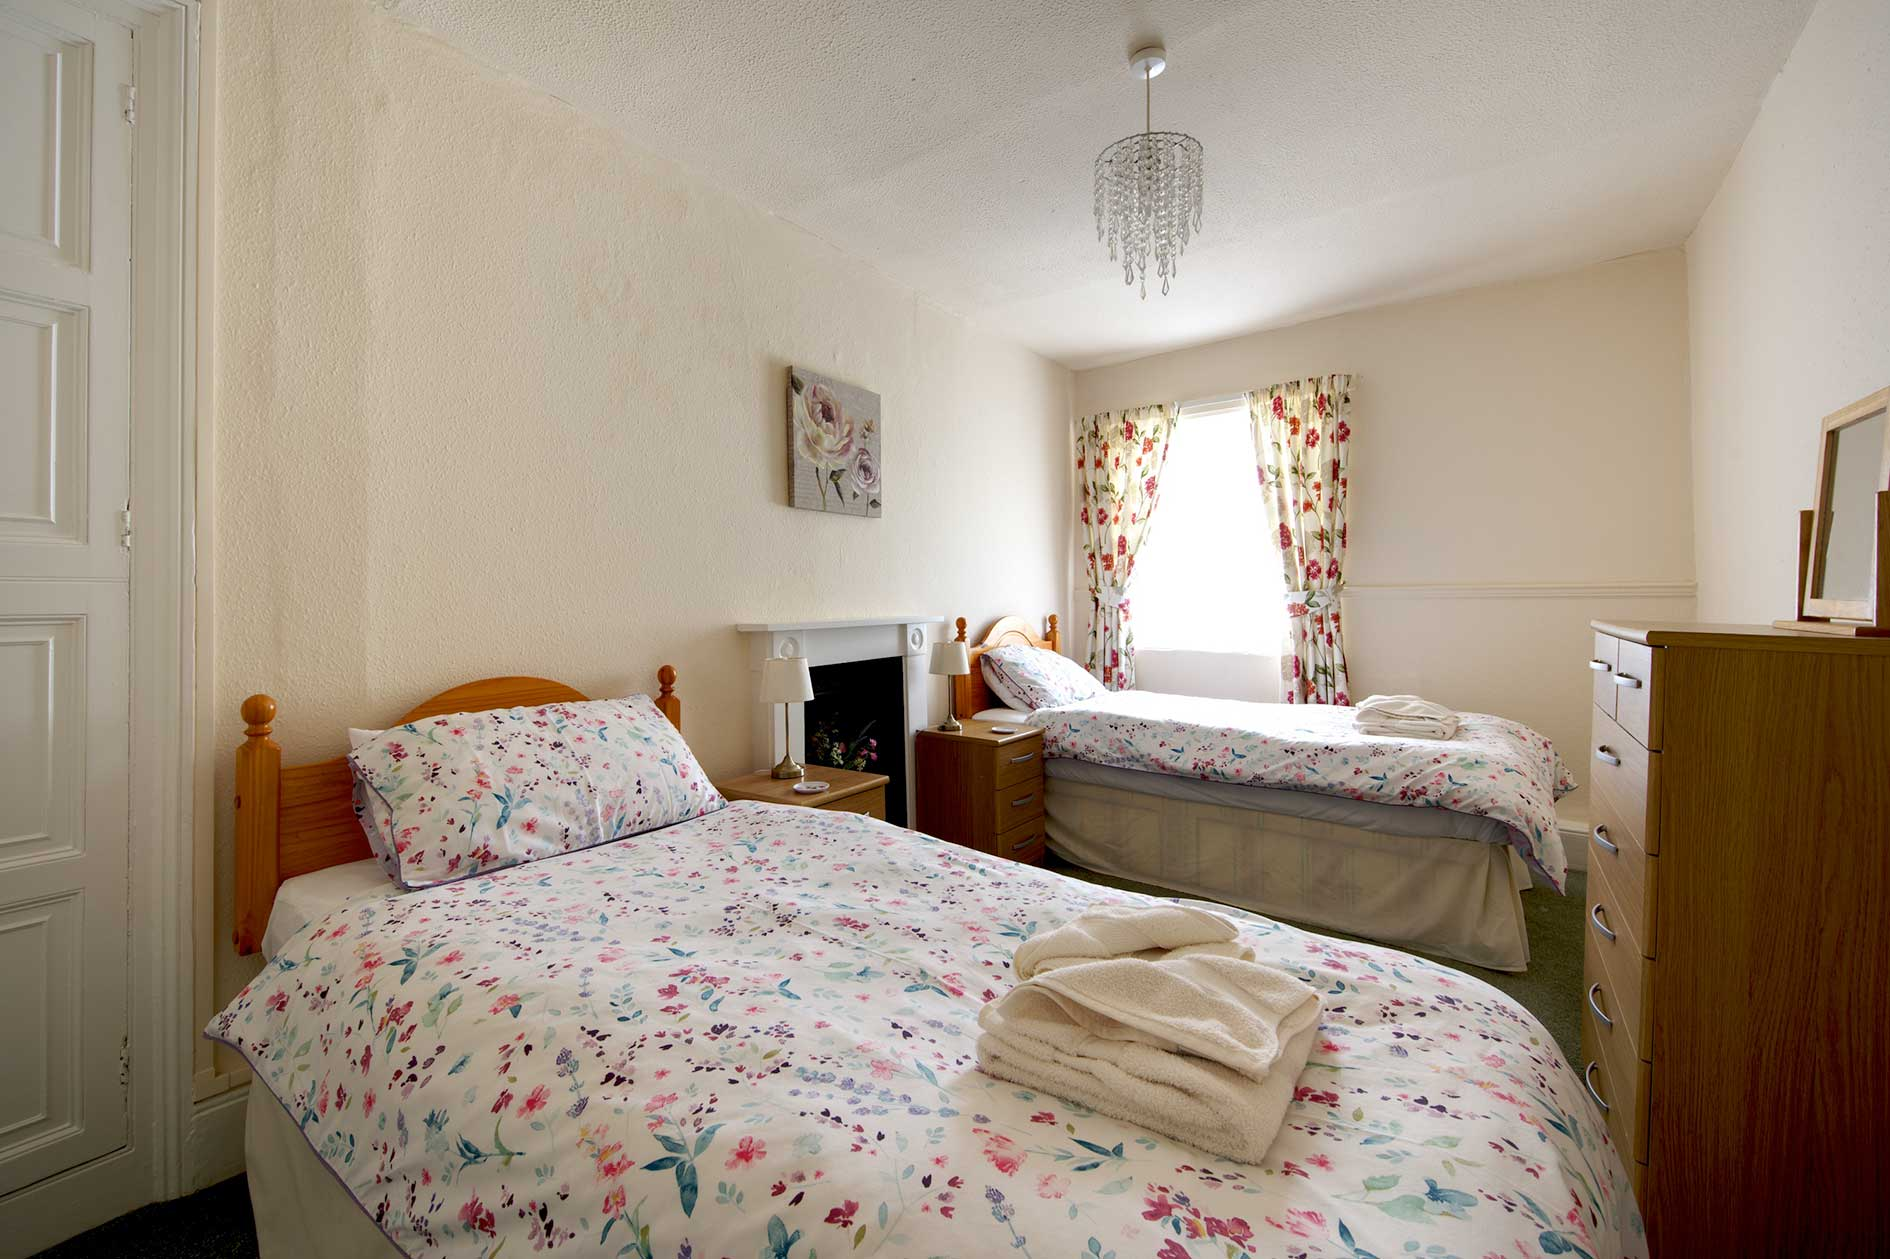 Light Bedroom With Two Single Beds With Floral Covers And Wooden Furniture